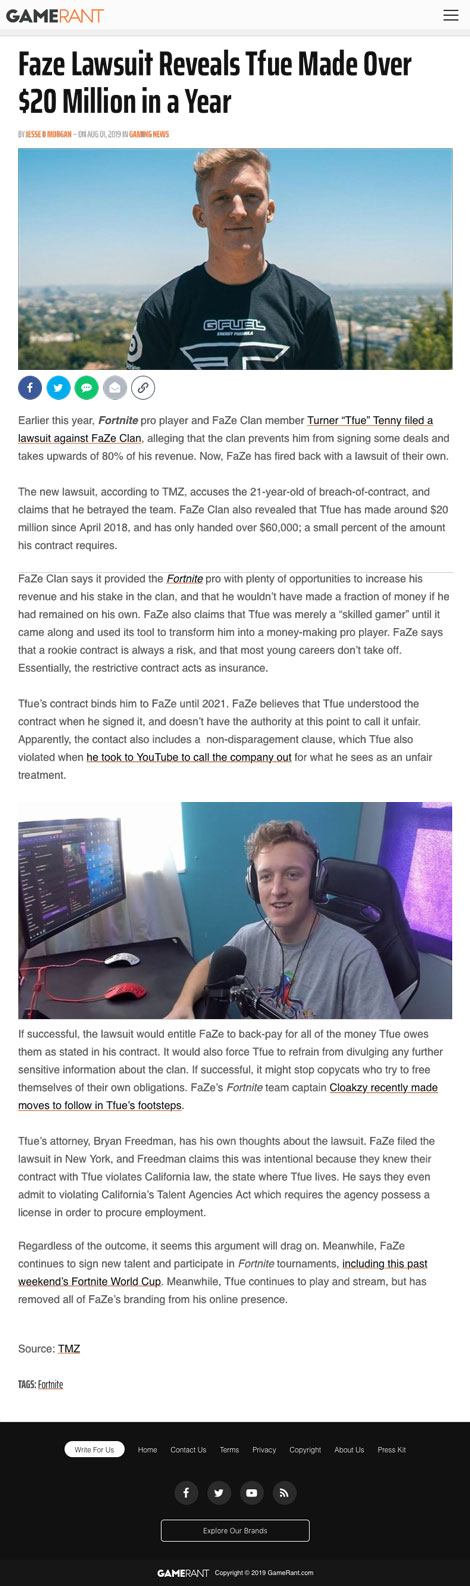 Faze Lawsuit Reveals Tfue Made Over $20 Million in a Year - article by GameRant.com